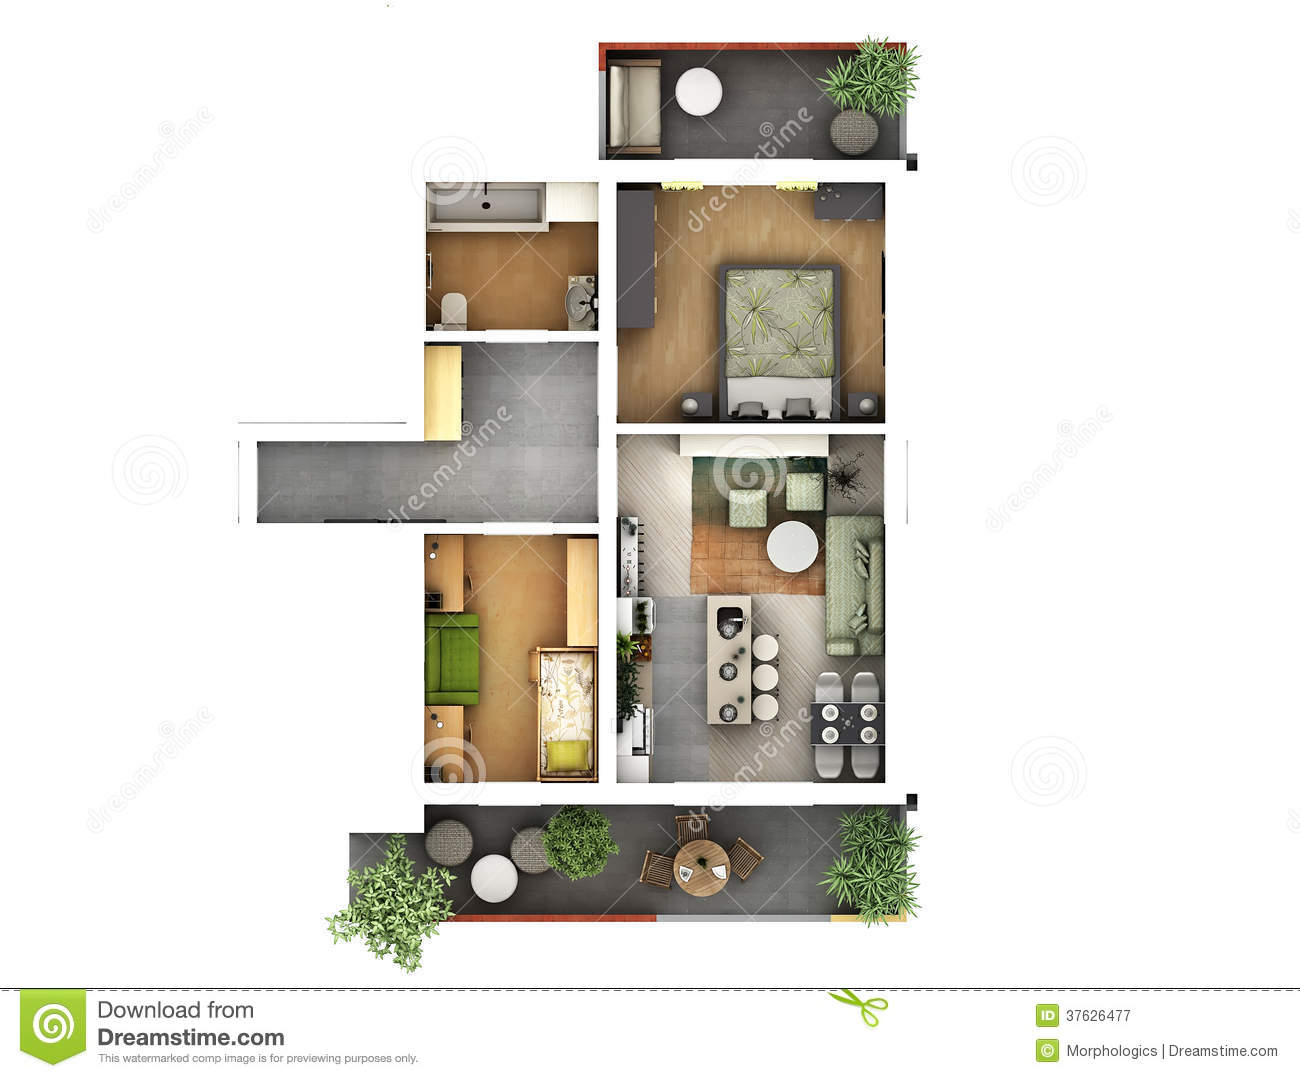 3d floor plan stock illustration. Image of decoration